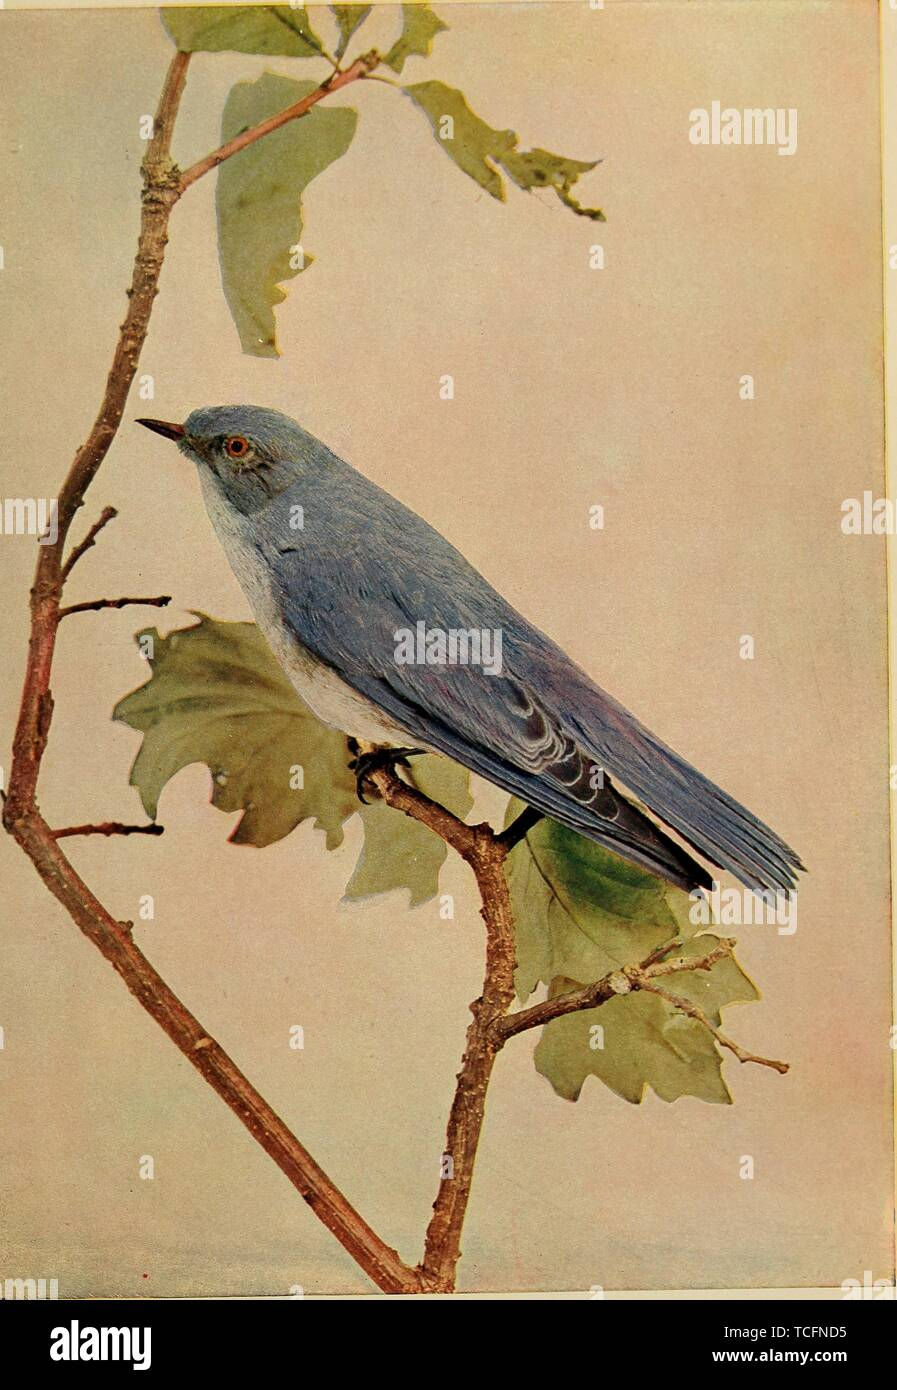 Engraved drawing of the Mountain Bluebird (Sialia currucoides), from the book 'Birds and nature' by William Kerr Higley, 1900. Courtesy Internet Archive. () - Stock Image